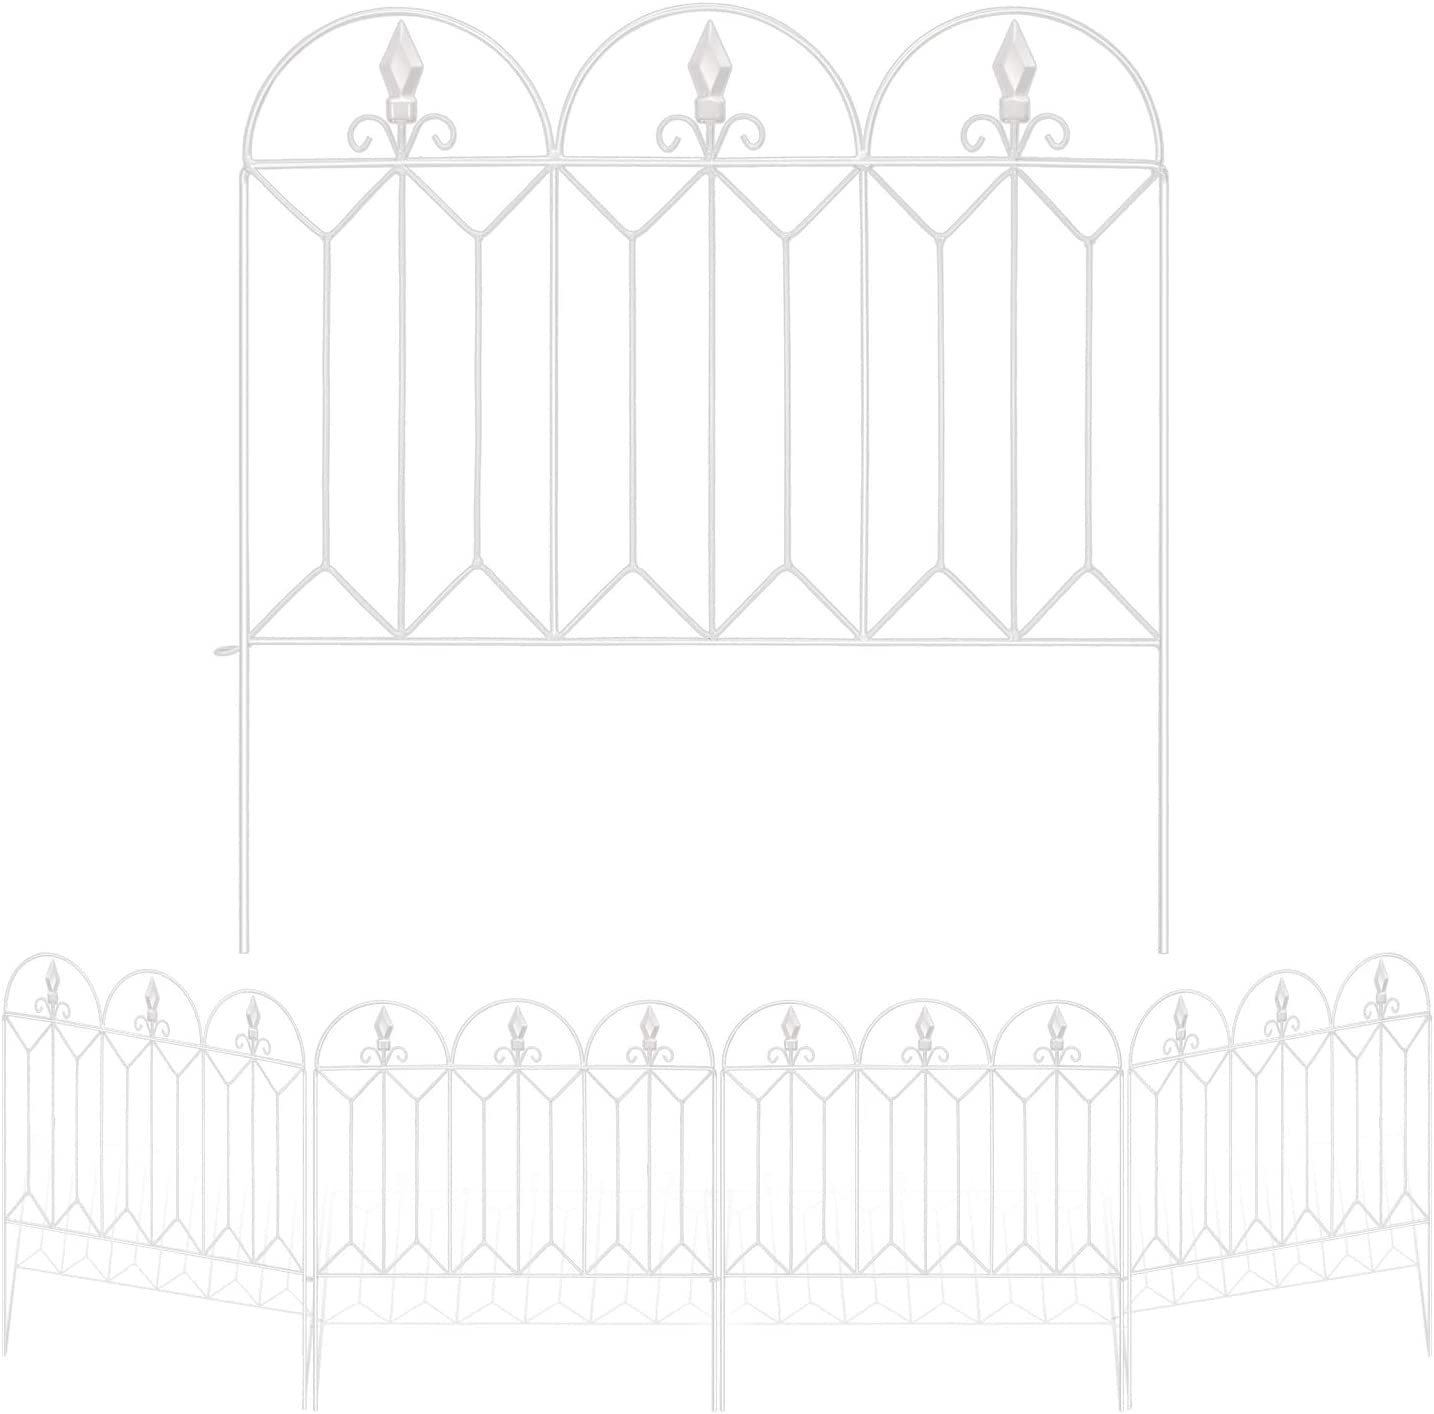 Amagabeli Garden Fence 24inx10ft Outdoor Decorative Fencing Landscape Wire Fencing Folding Wire Patio Border Edge Section Fences Flower Bed Animal Barrier Décor Picket White Rustproof Panels Wire